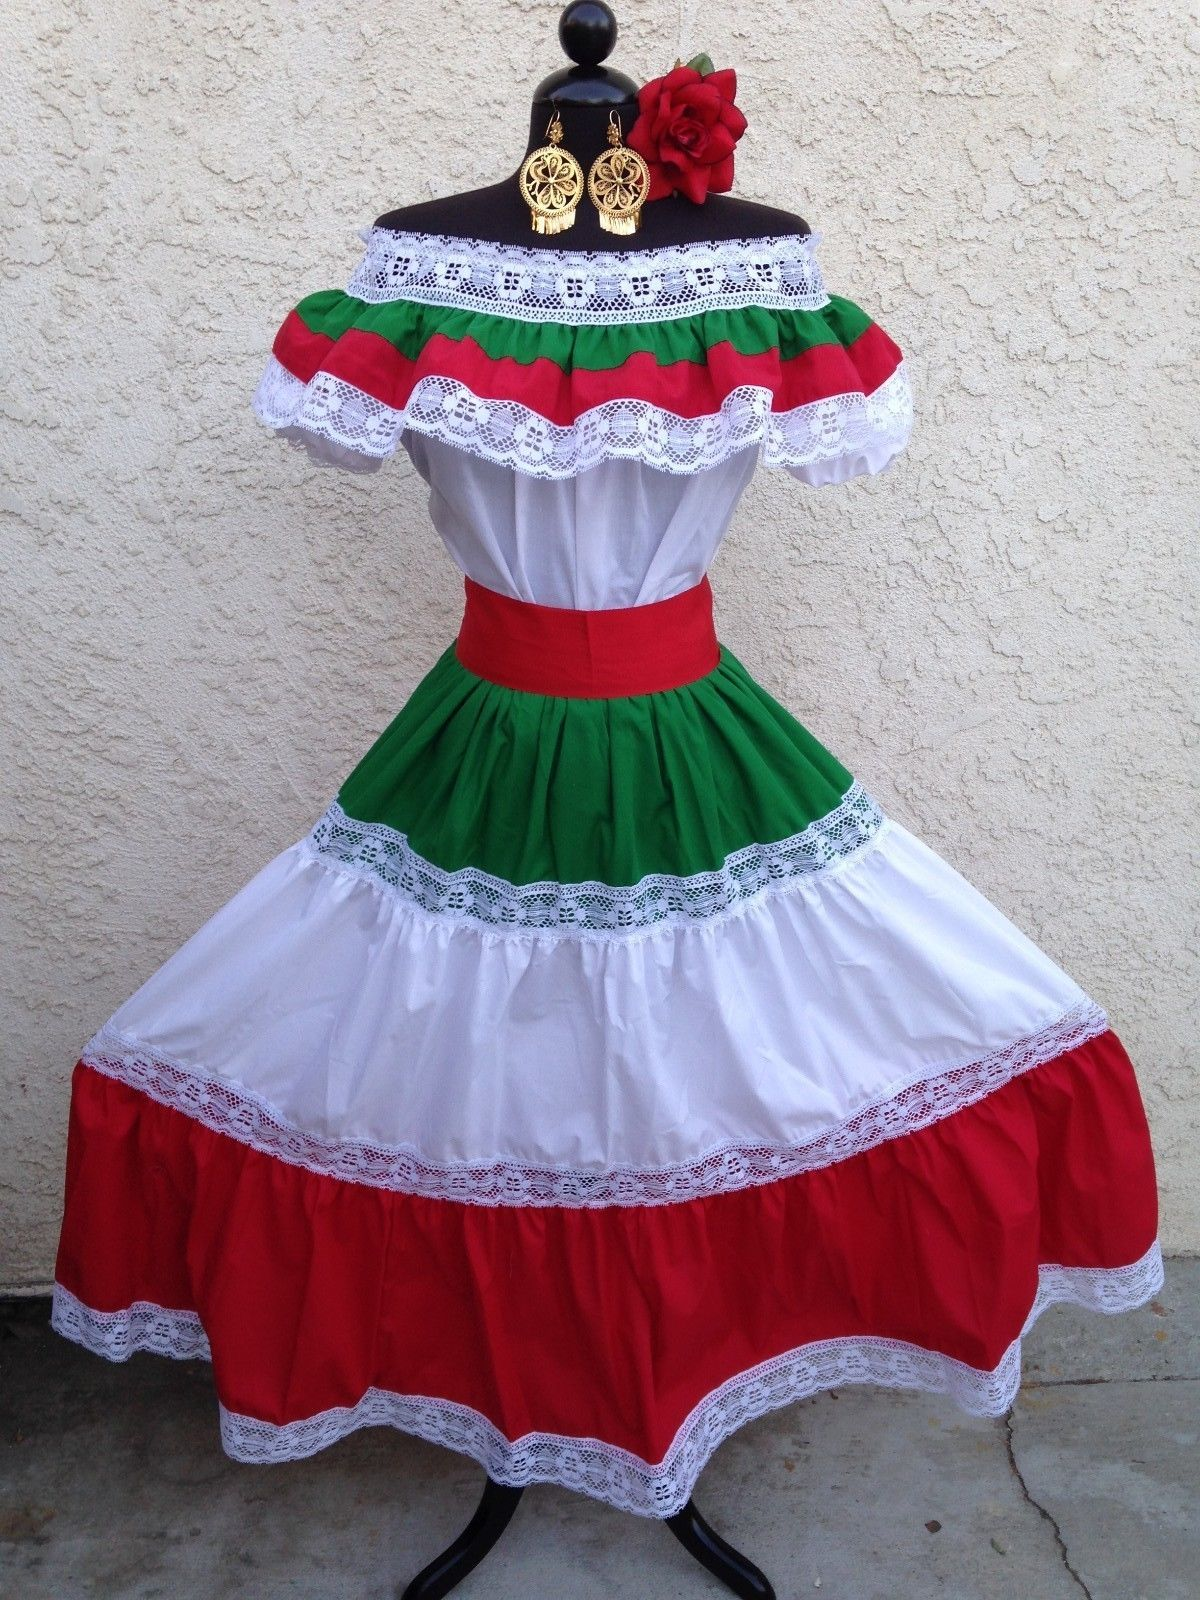 Details Mexican Fiesta Cinco De Mayo Wedding Dress